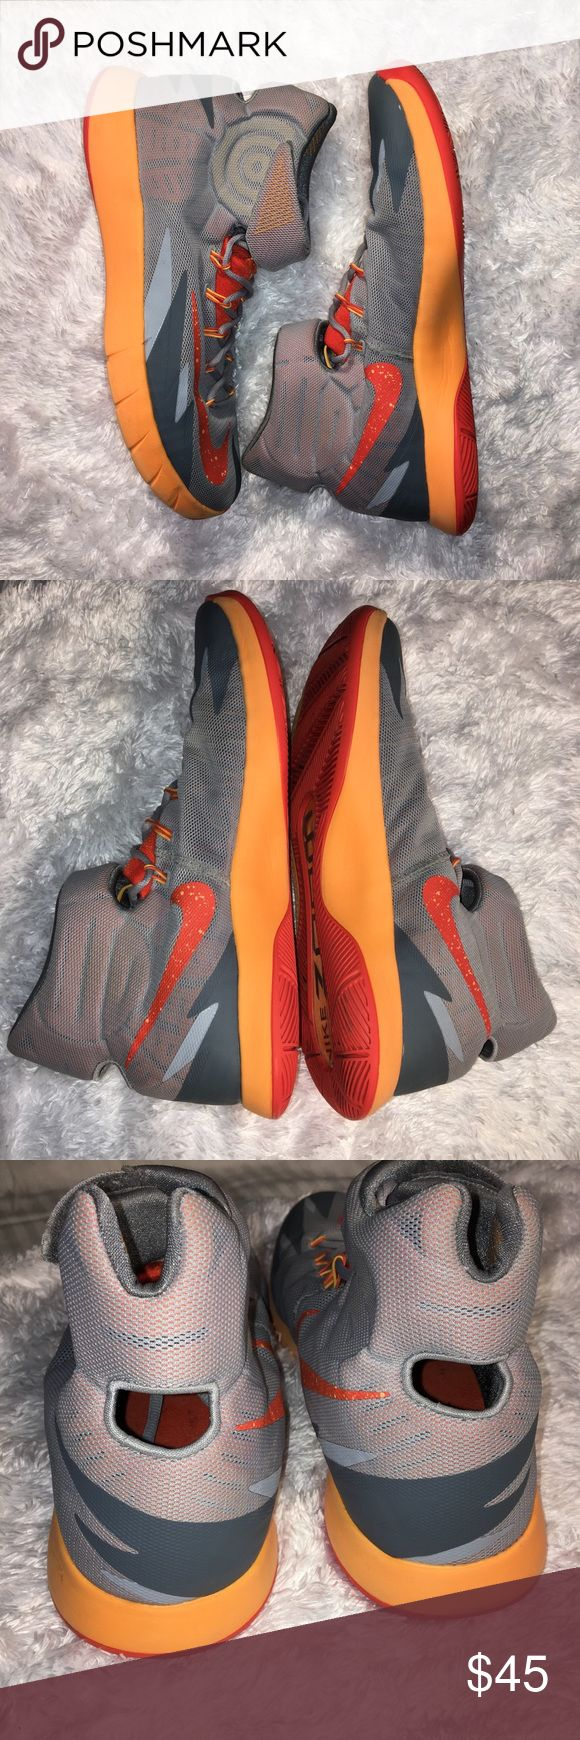 Men's NIKE zoom orange & gray hyper rev sneaker Authentic NIKE ZOOM Hyperrev basketball shoes. Men's size 13 Grey orange mango color Preowned but lightly used, almost new! Insole logo is starting to rub off. No original box My home is CLEAN, SMOKE Free.  #nike #zoom #orange #men #shoes #sneakers #basketball Nike Shoes Sneakers